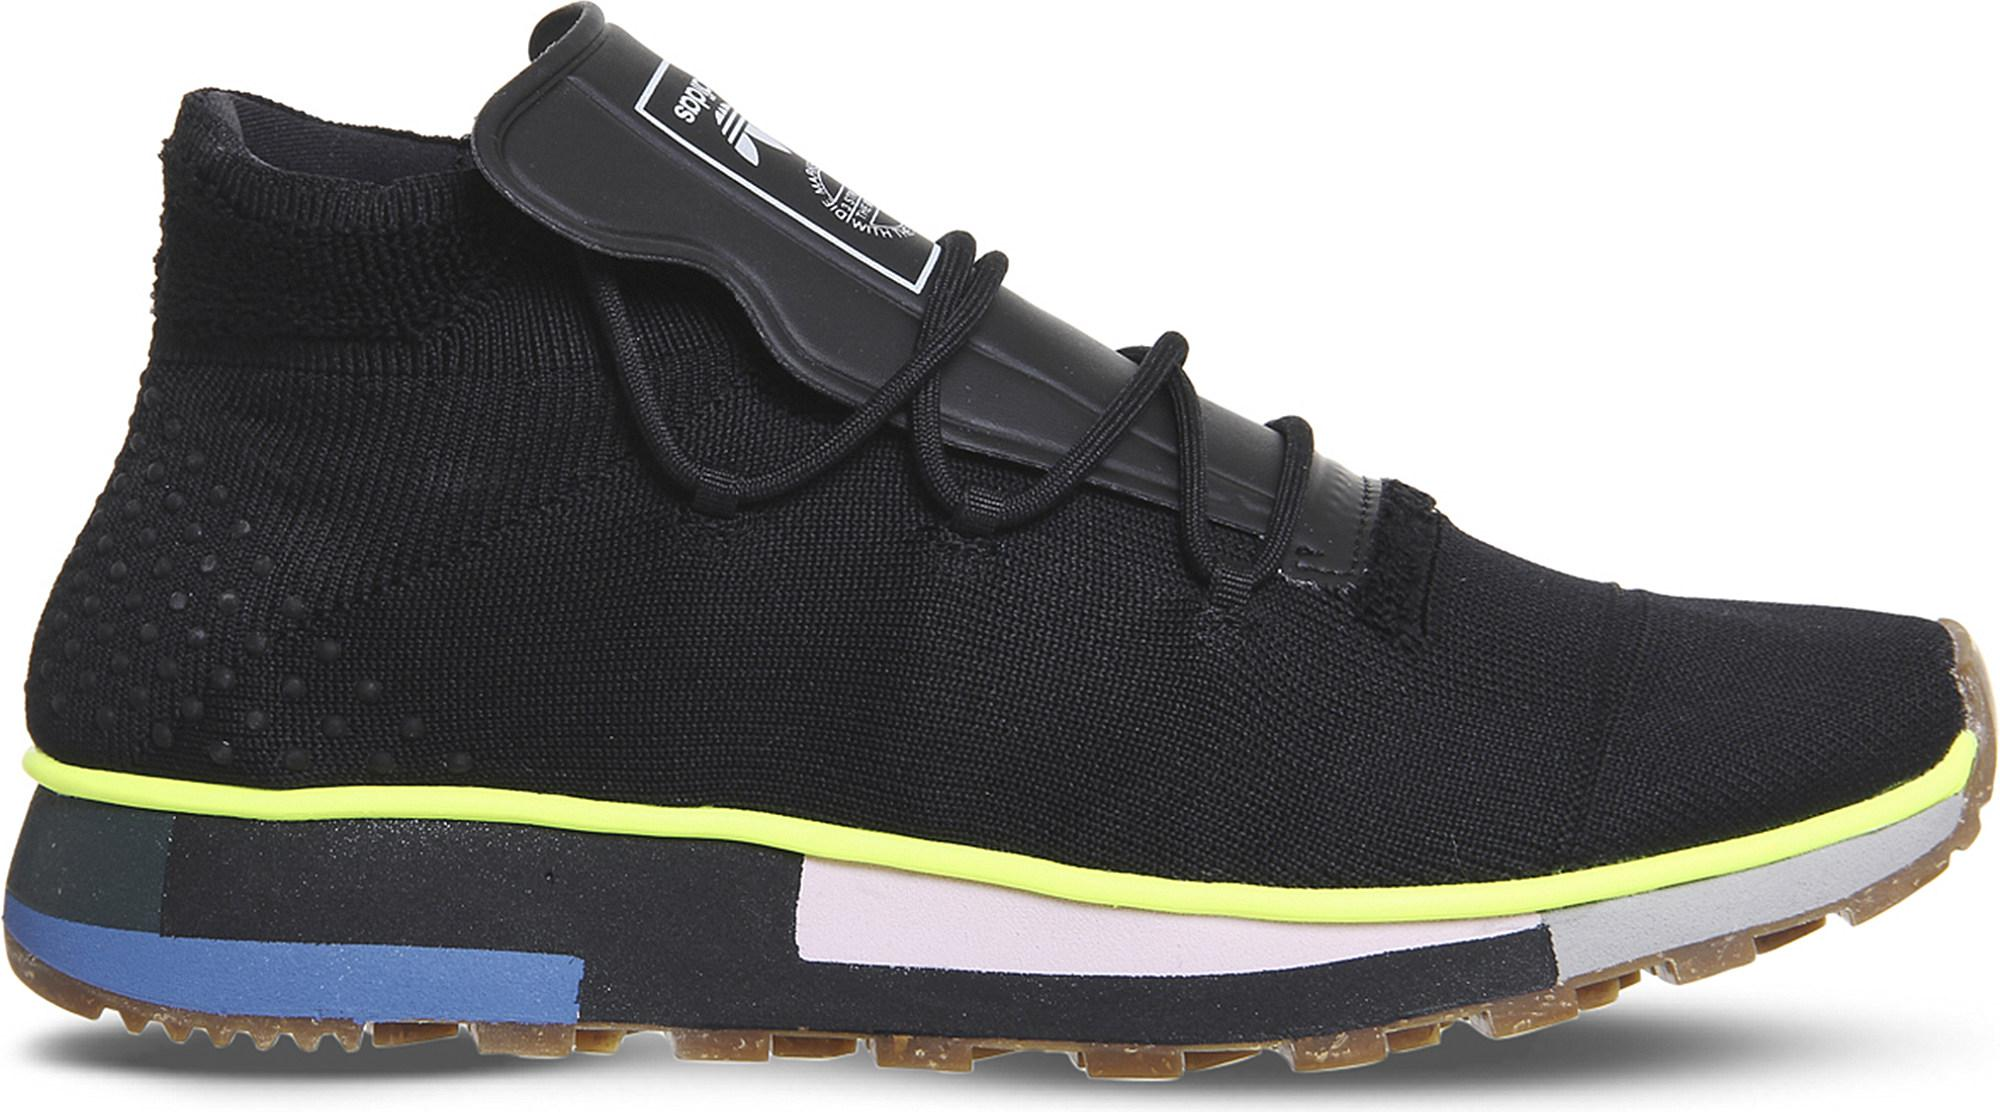 bdde849c39d9 Lyst - adidas Aw Run Mid-top Primeknit Trainers in Black for Men